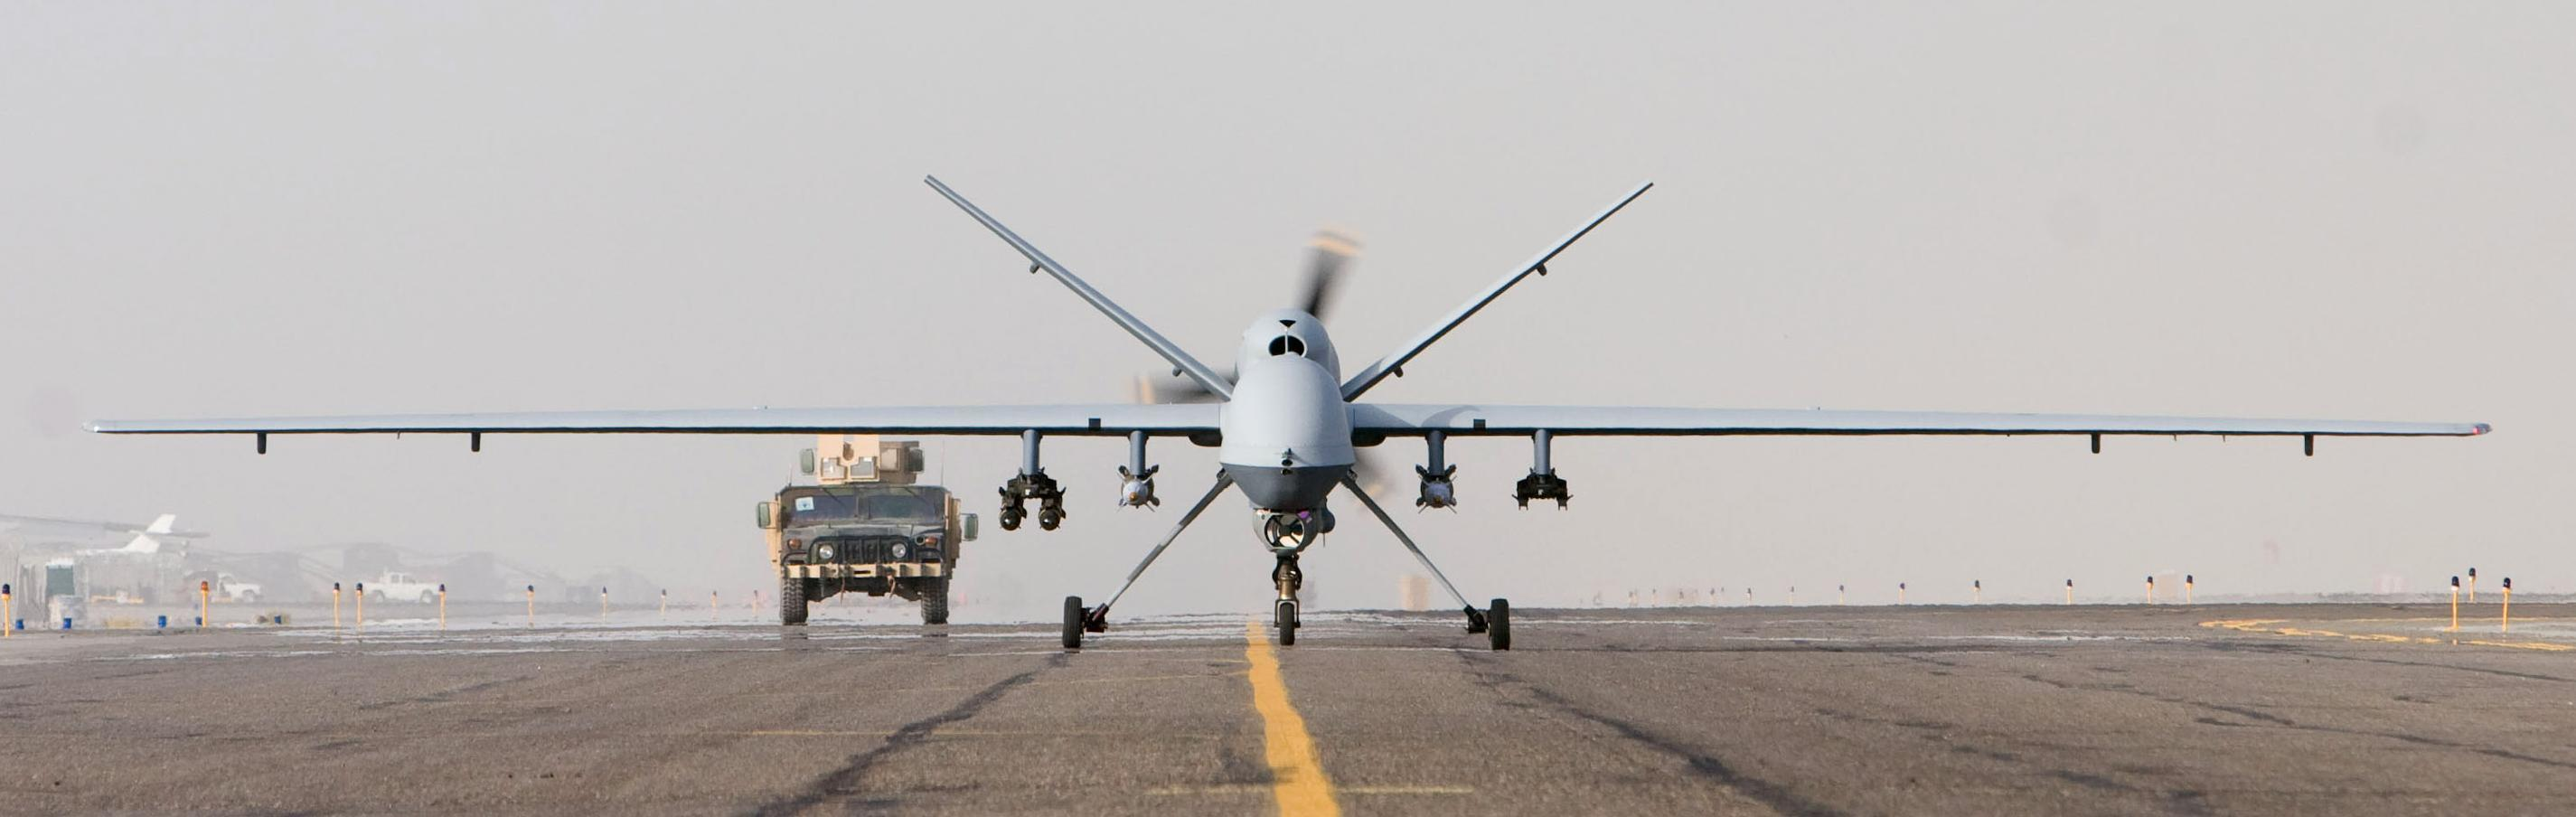 Aircraft military predator uav HD Wallpaper